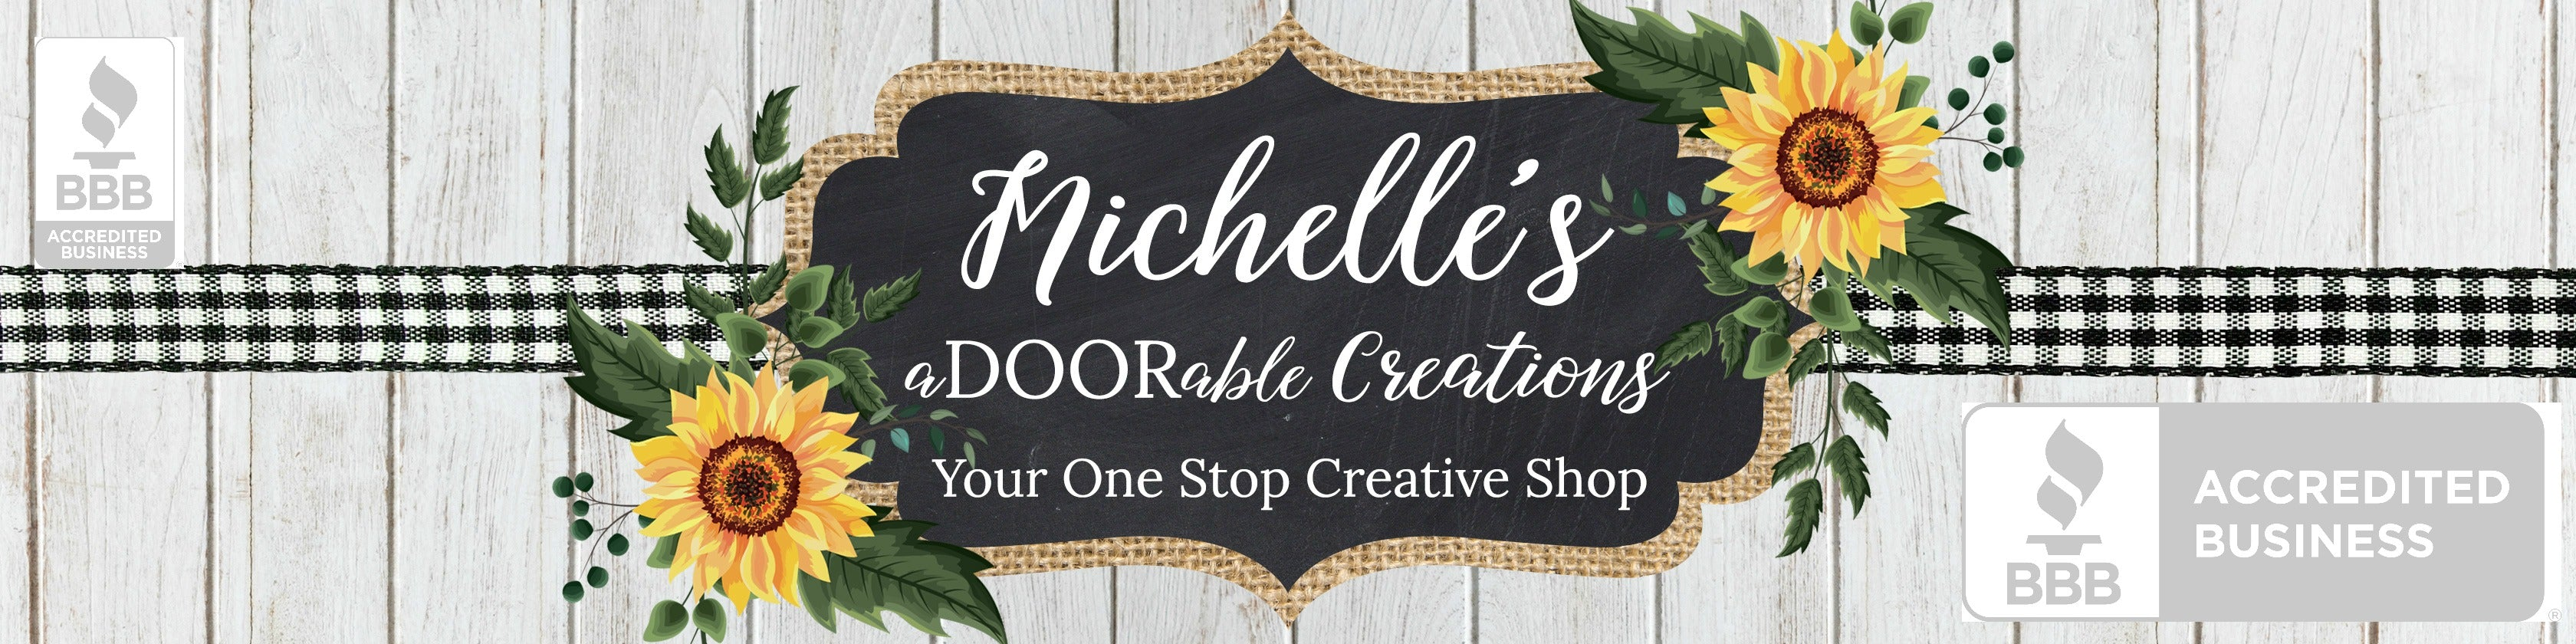 Michelle's aDOORable Creations